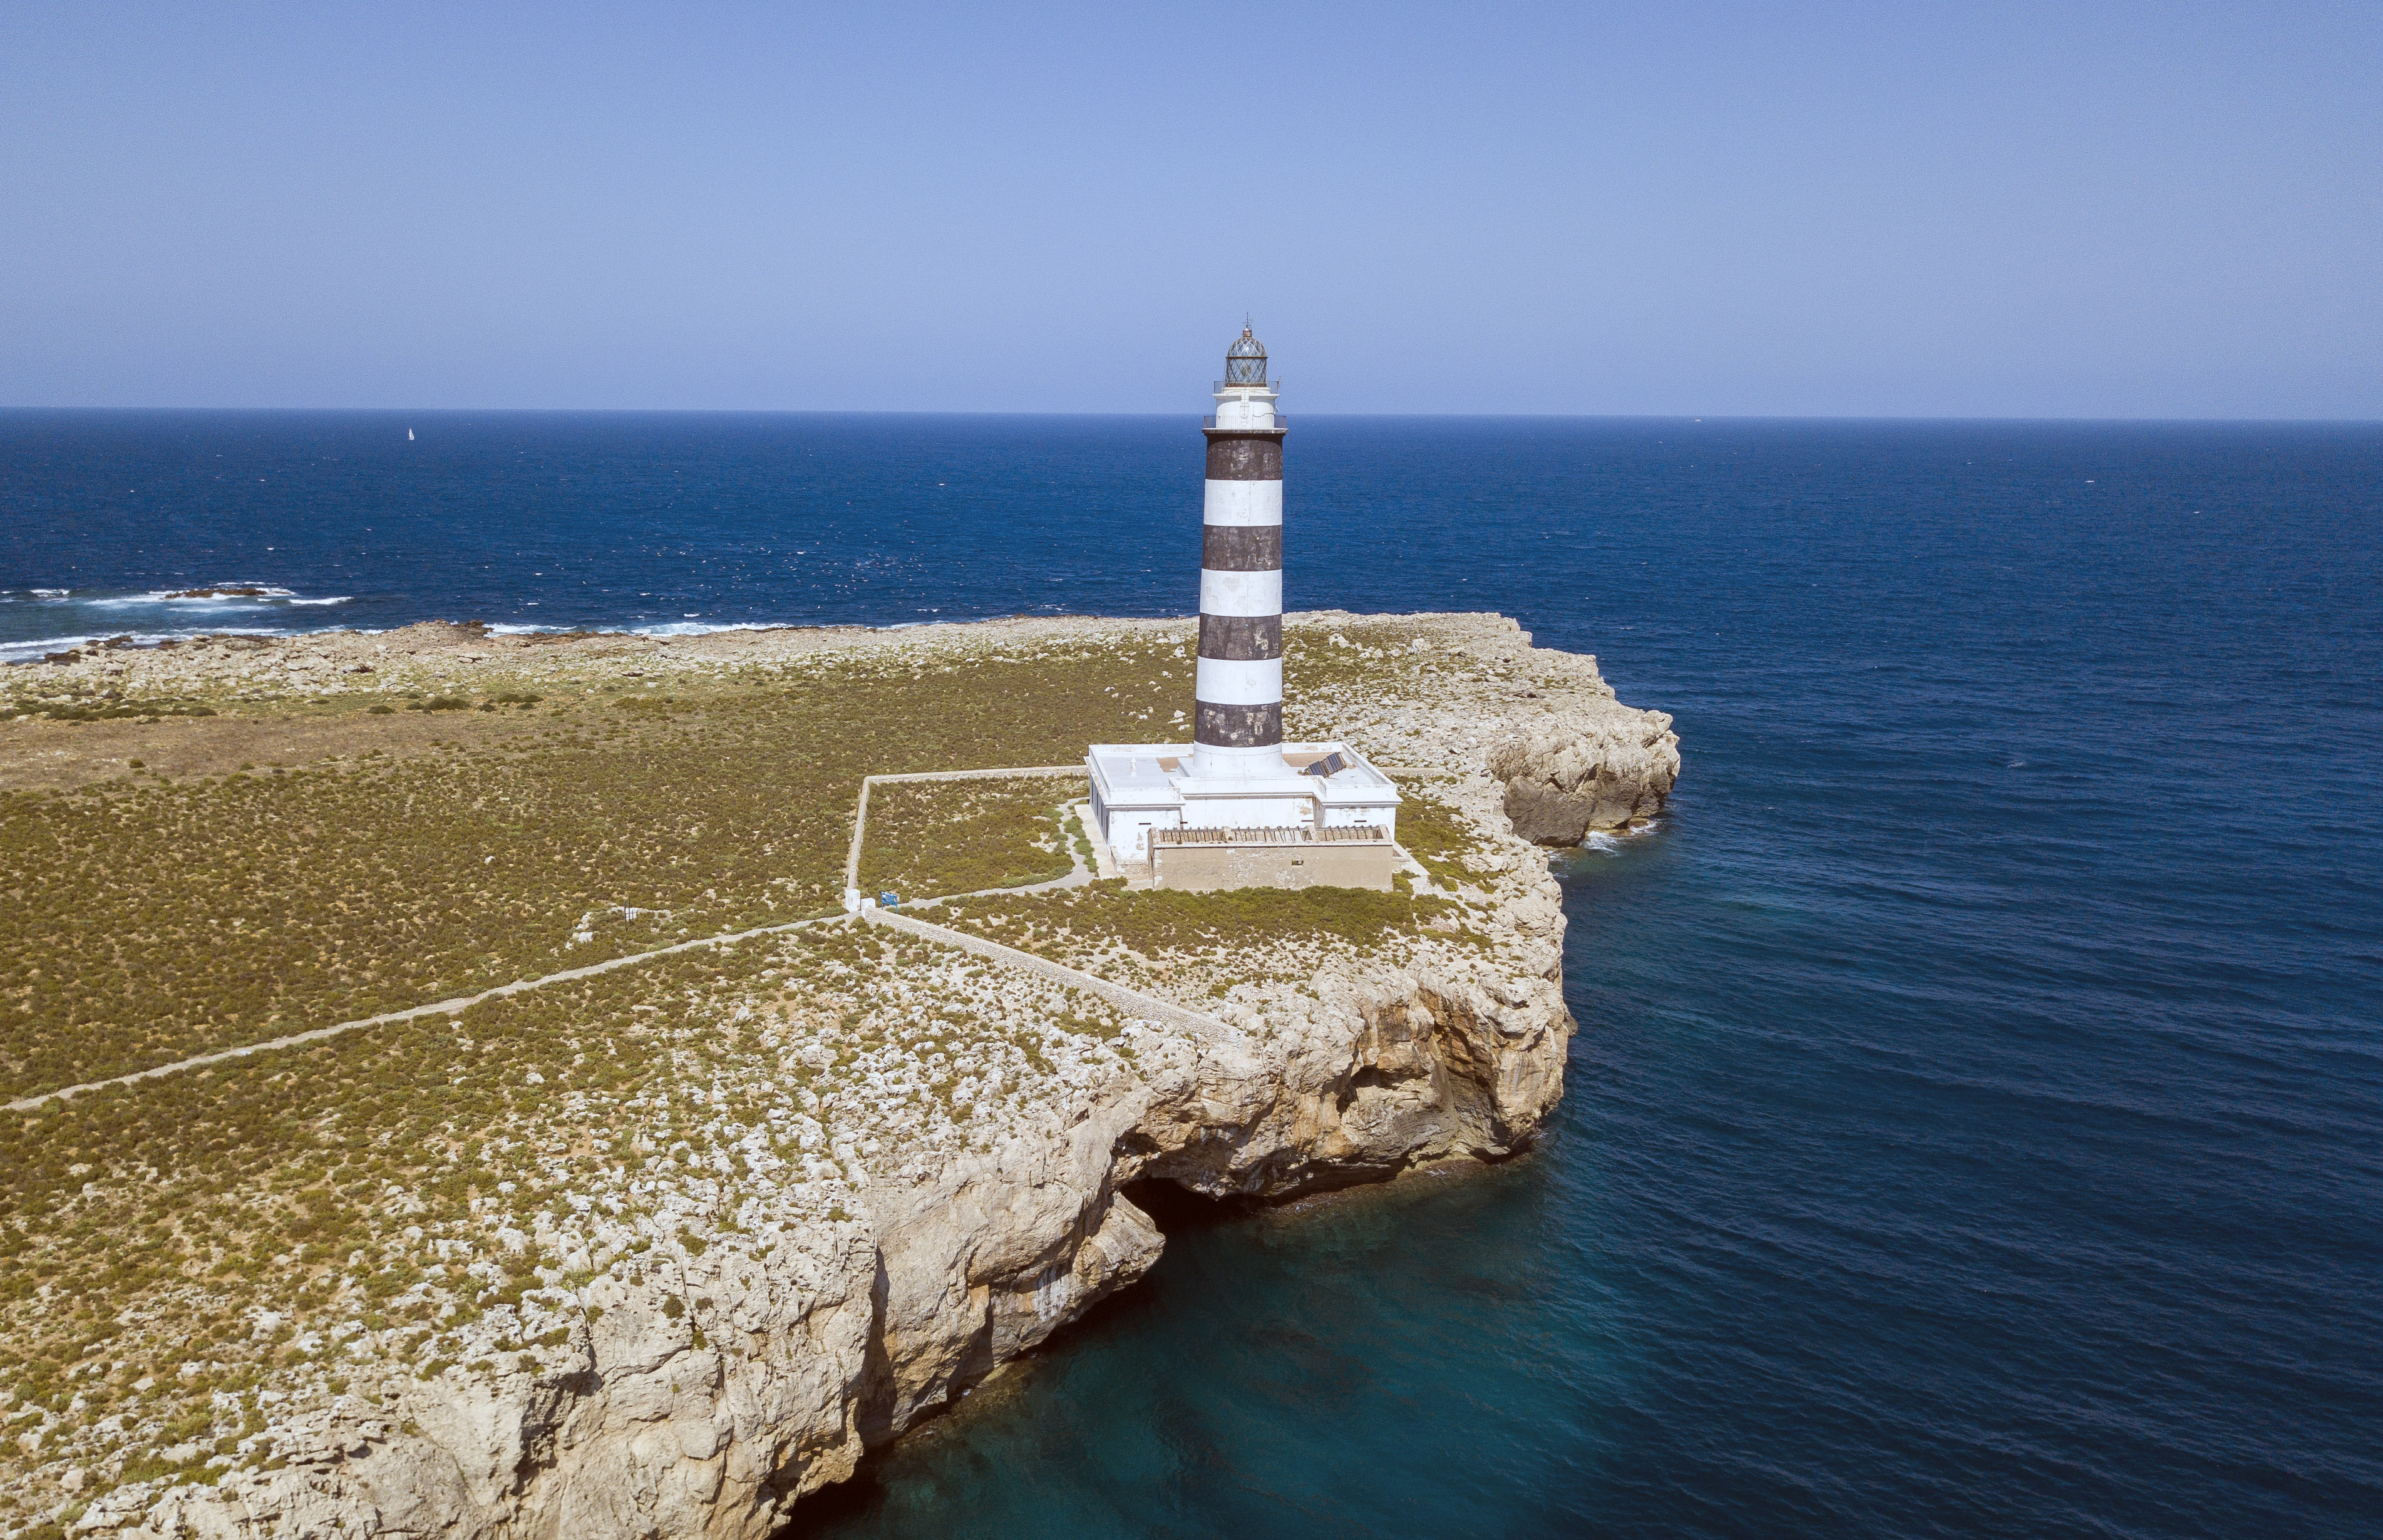 Drone shot of Lighthouse